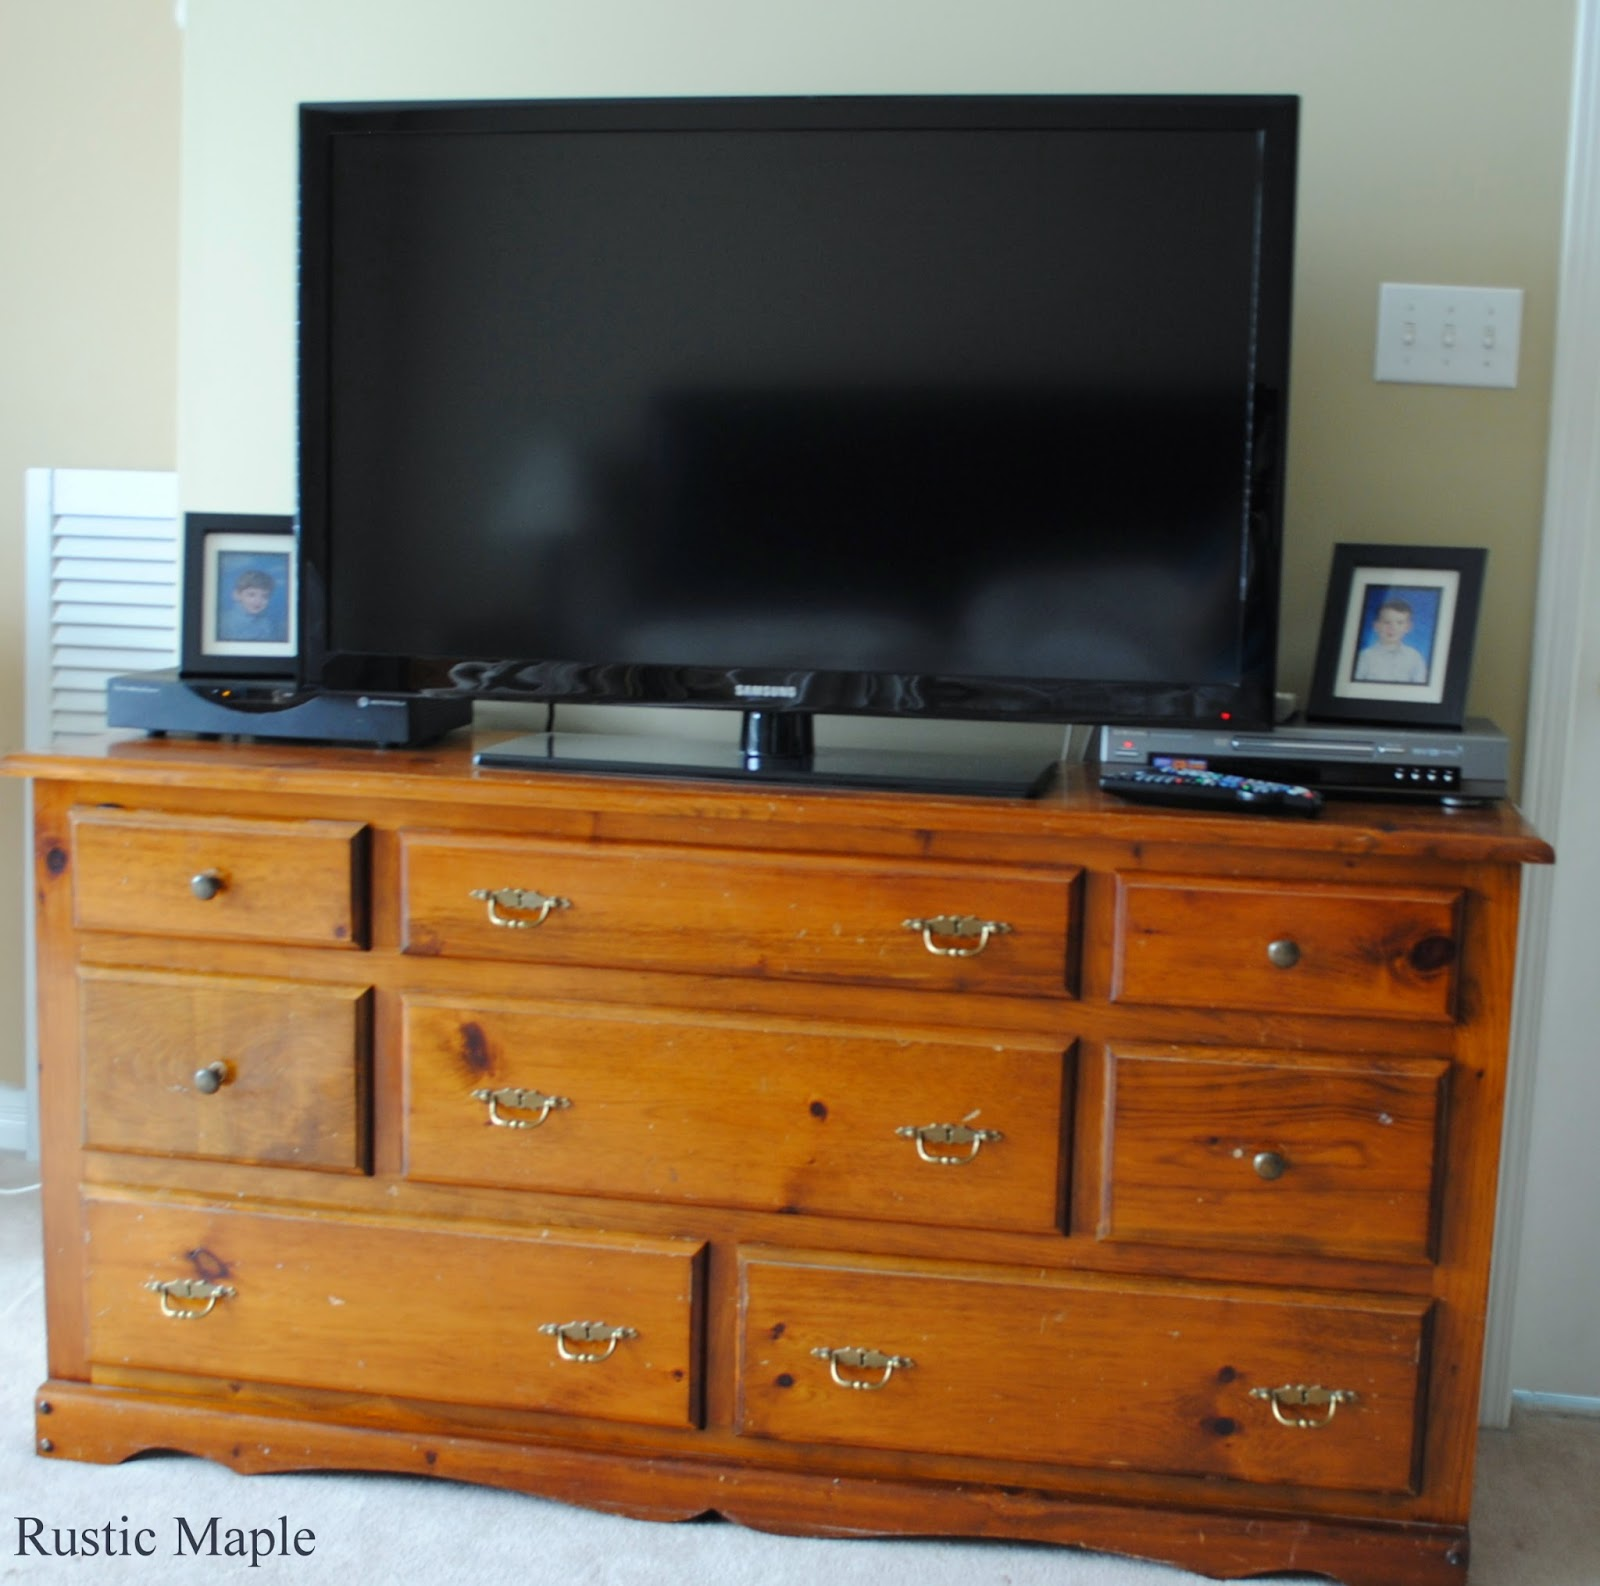 Rustic Maple: Lamp Black Dresser For Our Master Bedroom